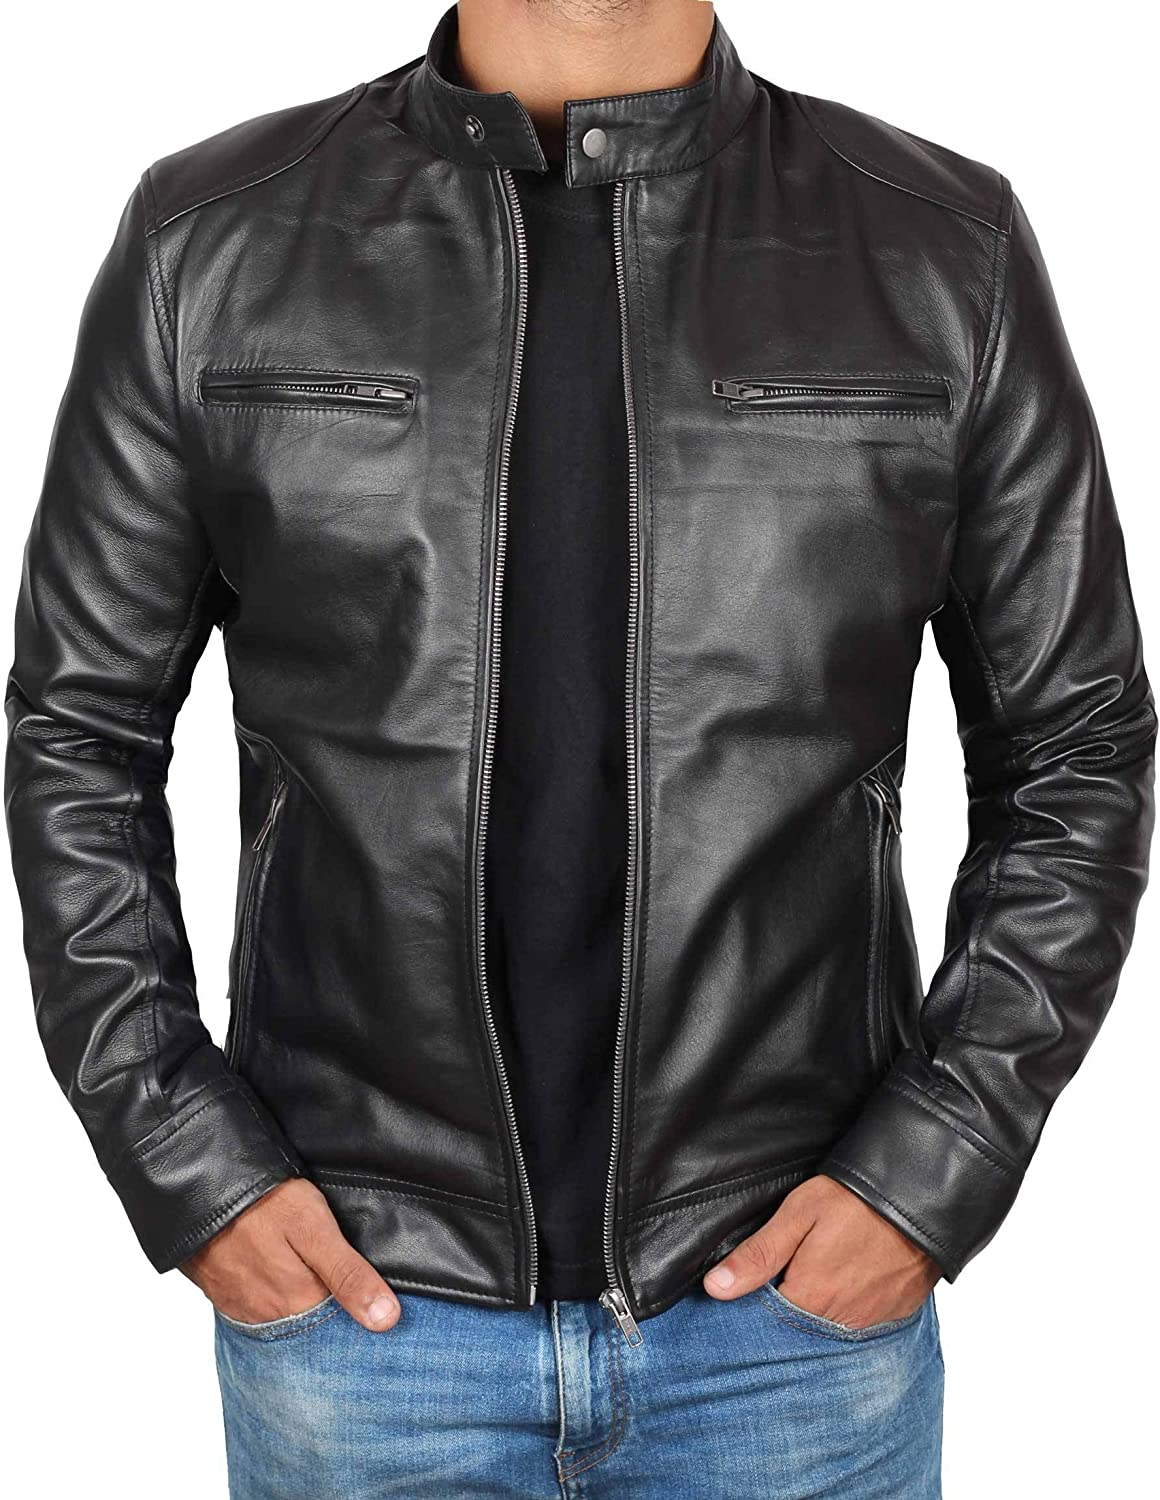 sviluppo di Diplomatico Seguire  Genuine Black Leather Jacket Men - Lambskin Lightweight Mens Leather Jackets  at Amazon Men's Clothing store